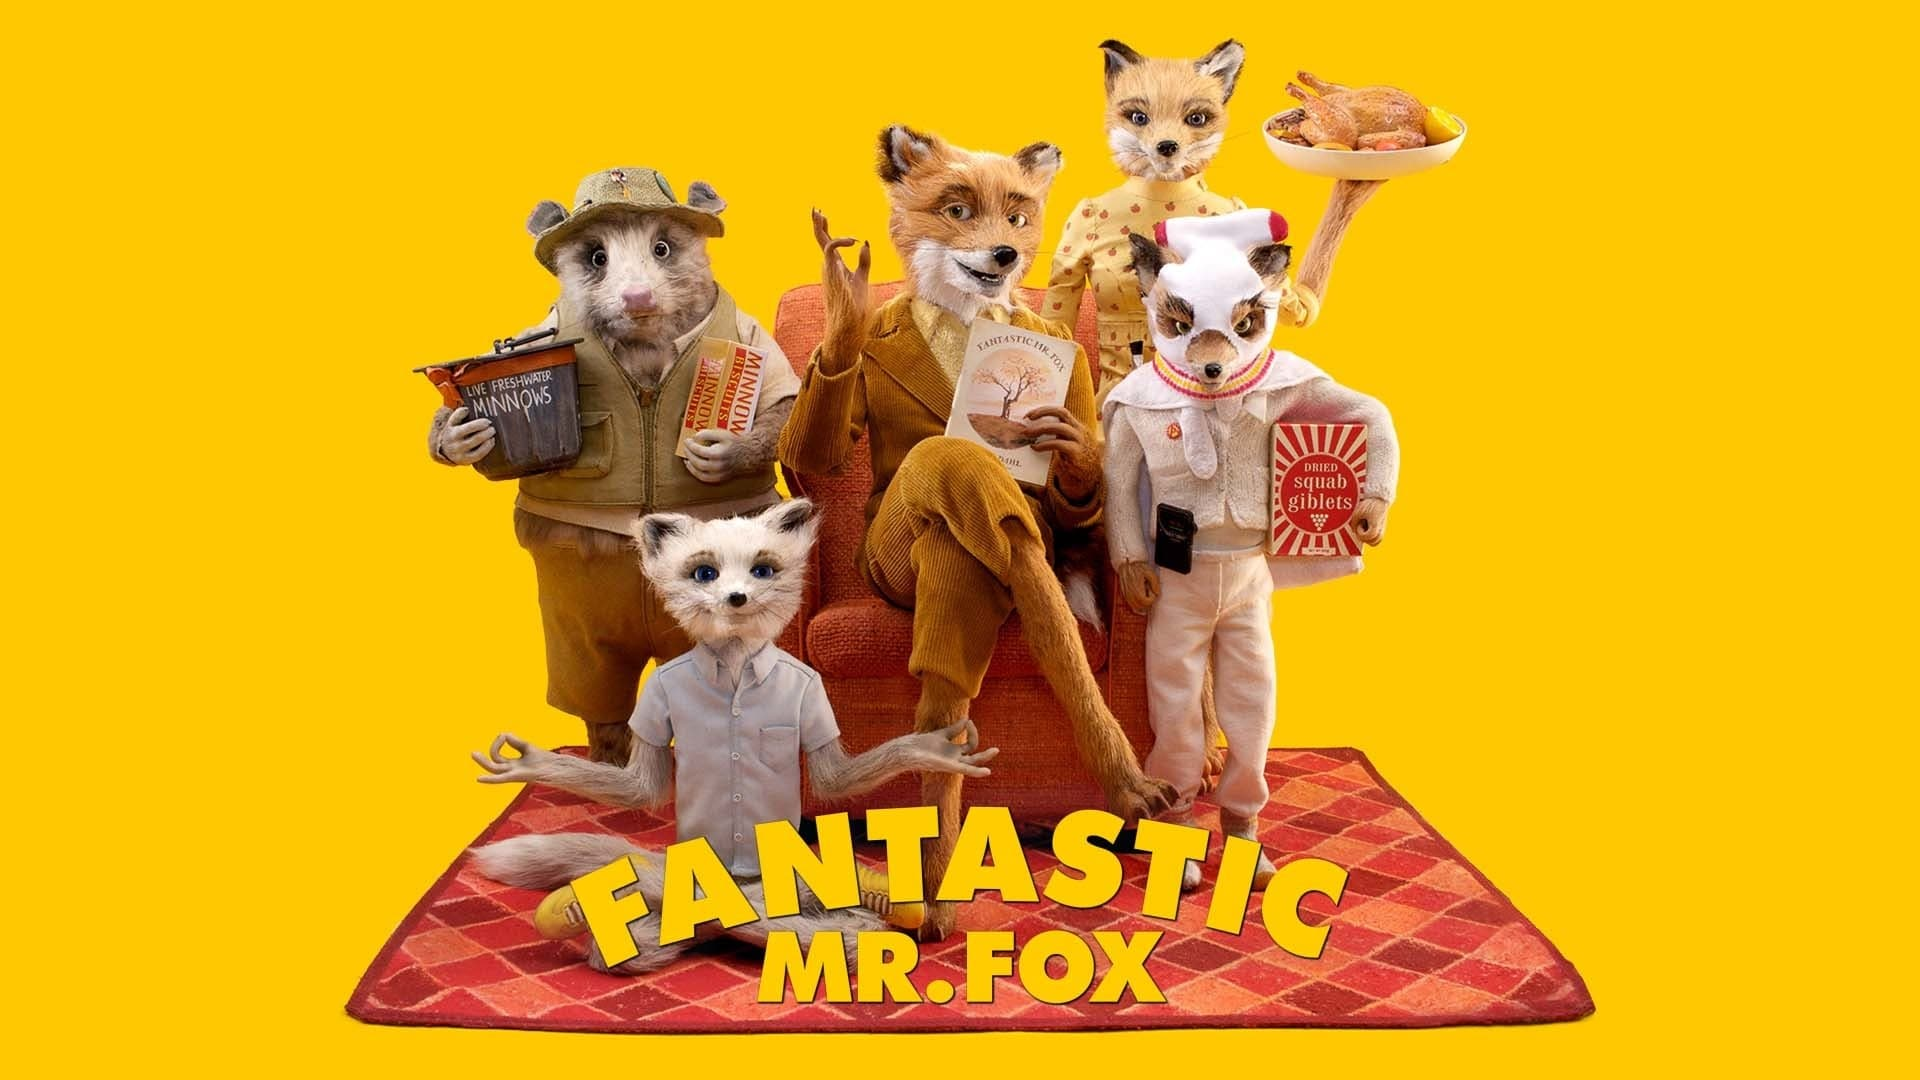 fantastic mr fox 2009 watch full movie online for free